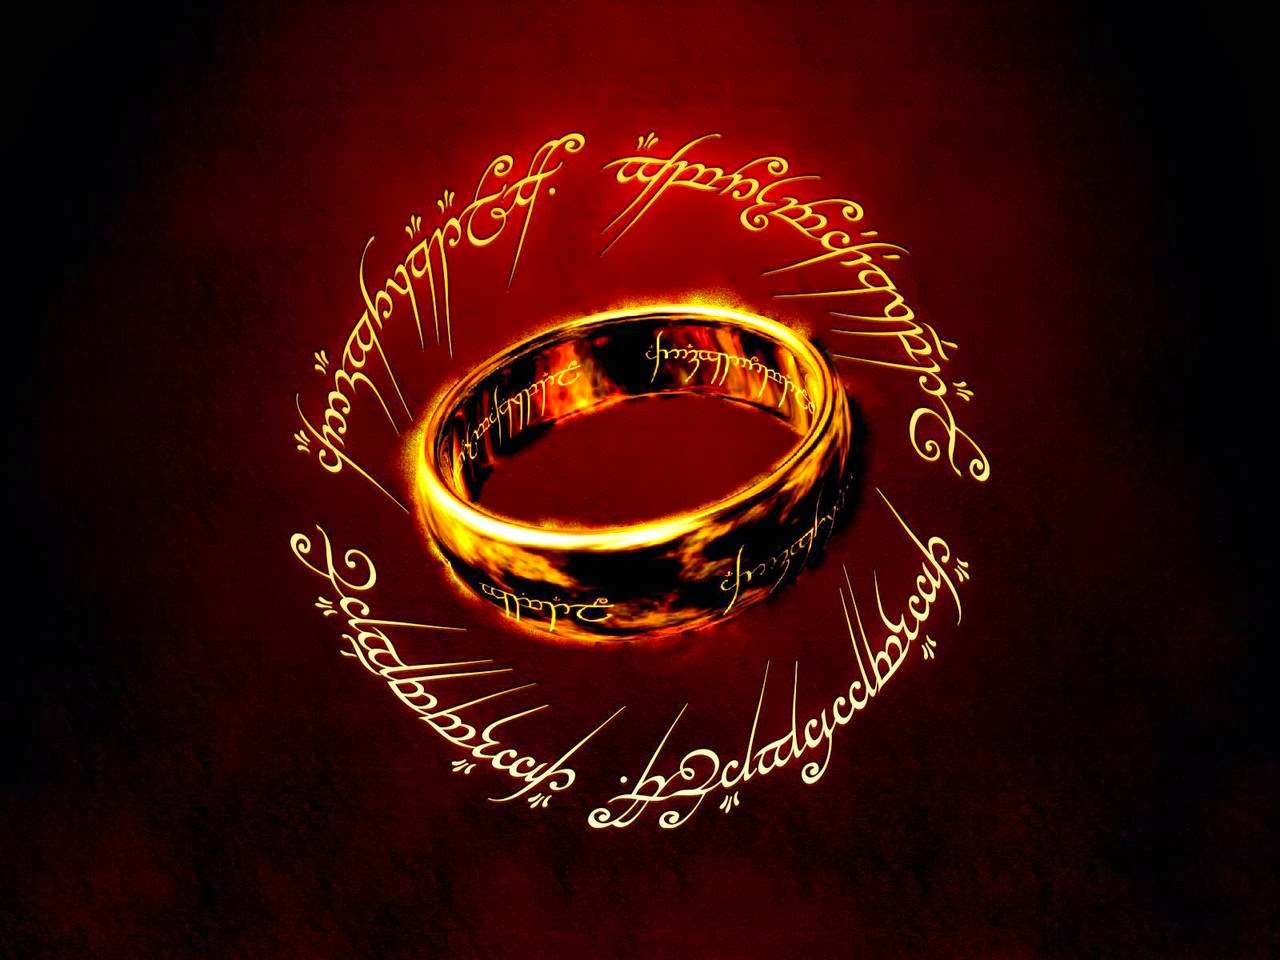 Xxxpawn one ring to rule them all